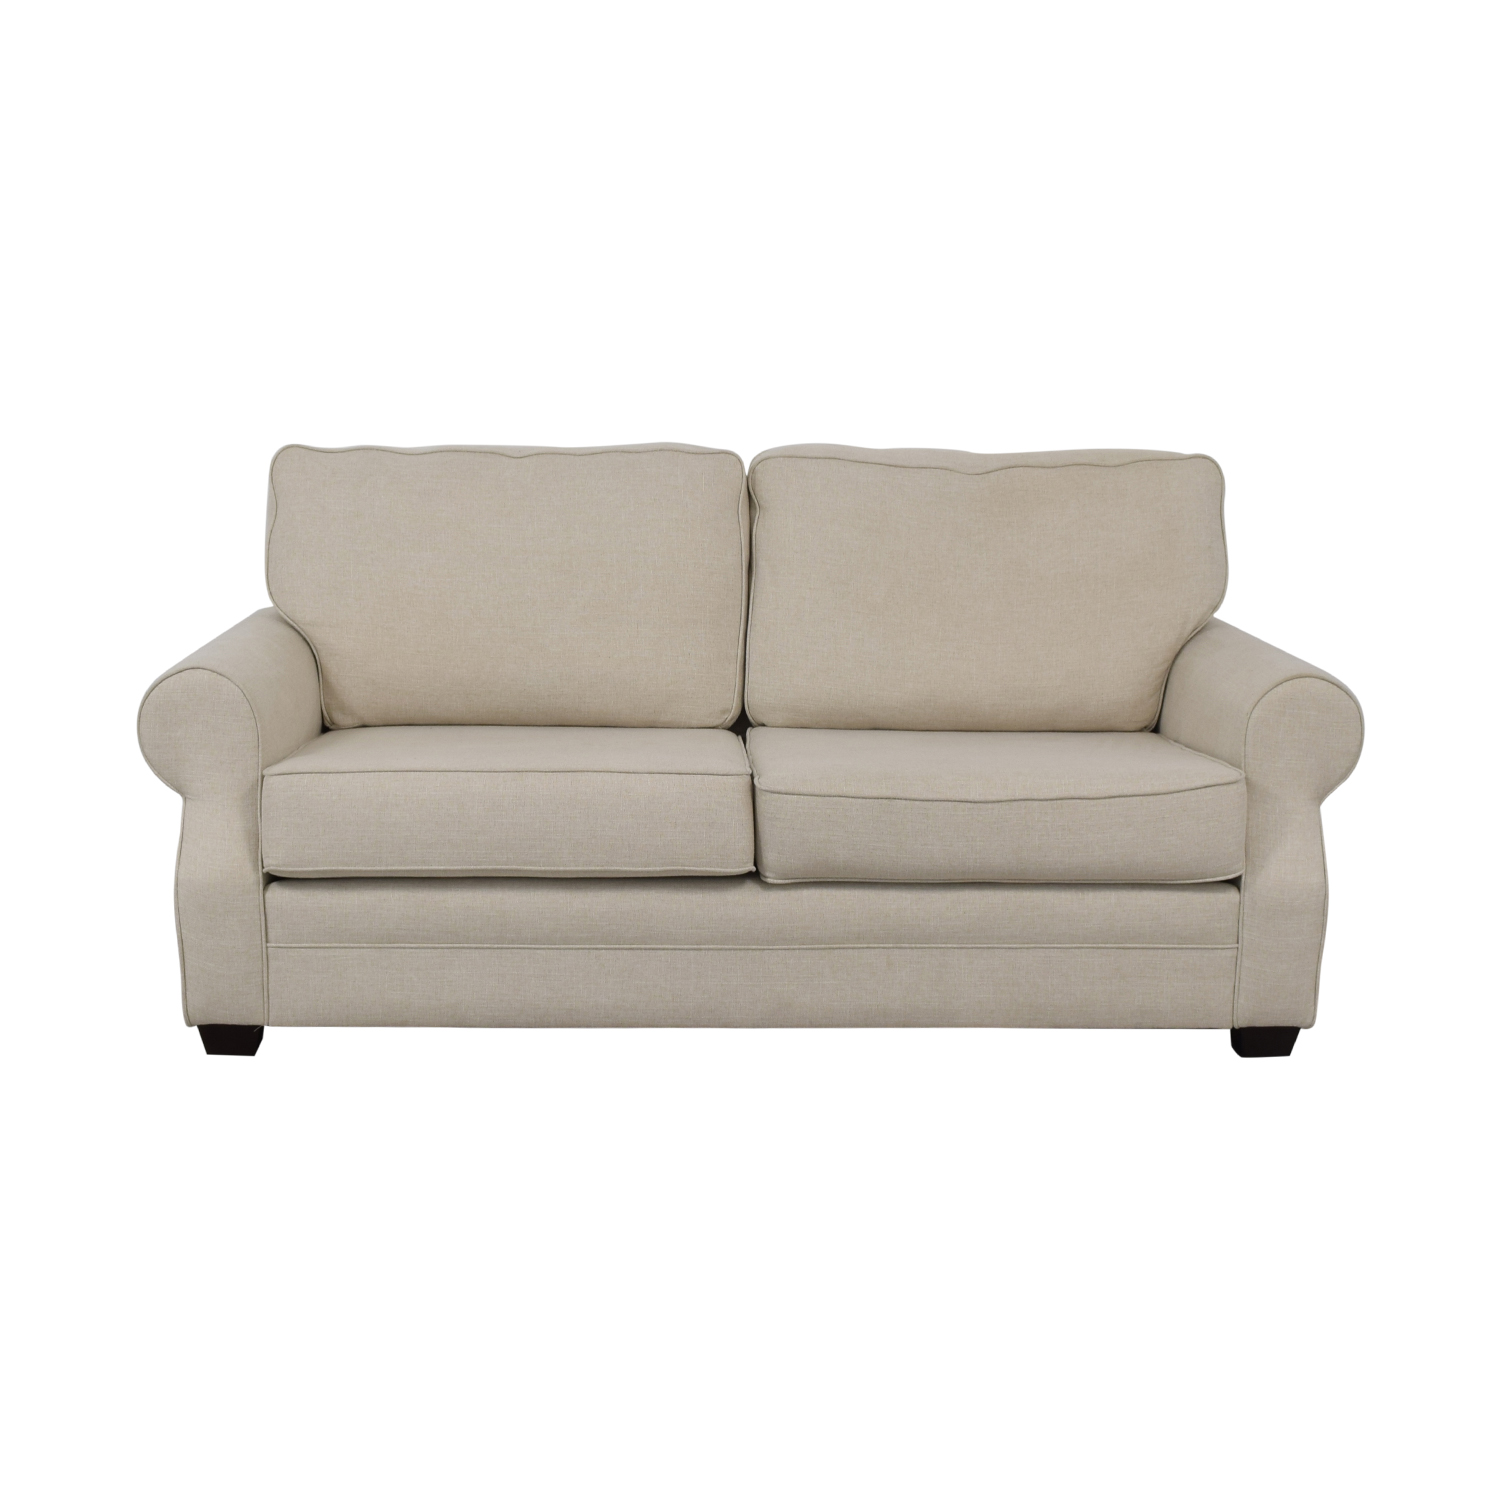 Pottery Barn Buchanan Roll Arm Upholstered Sofa sale